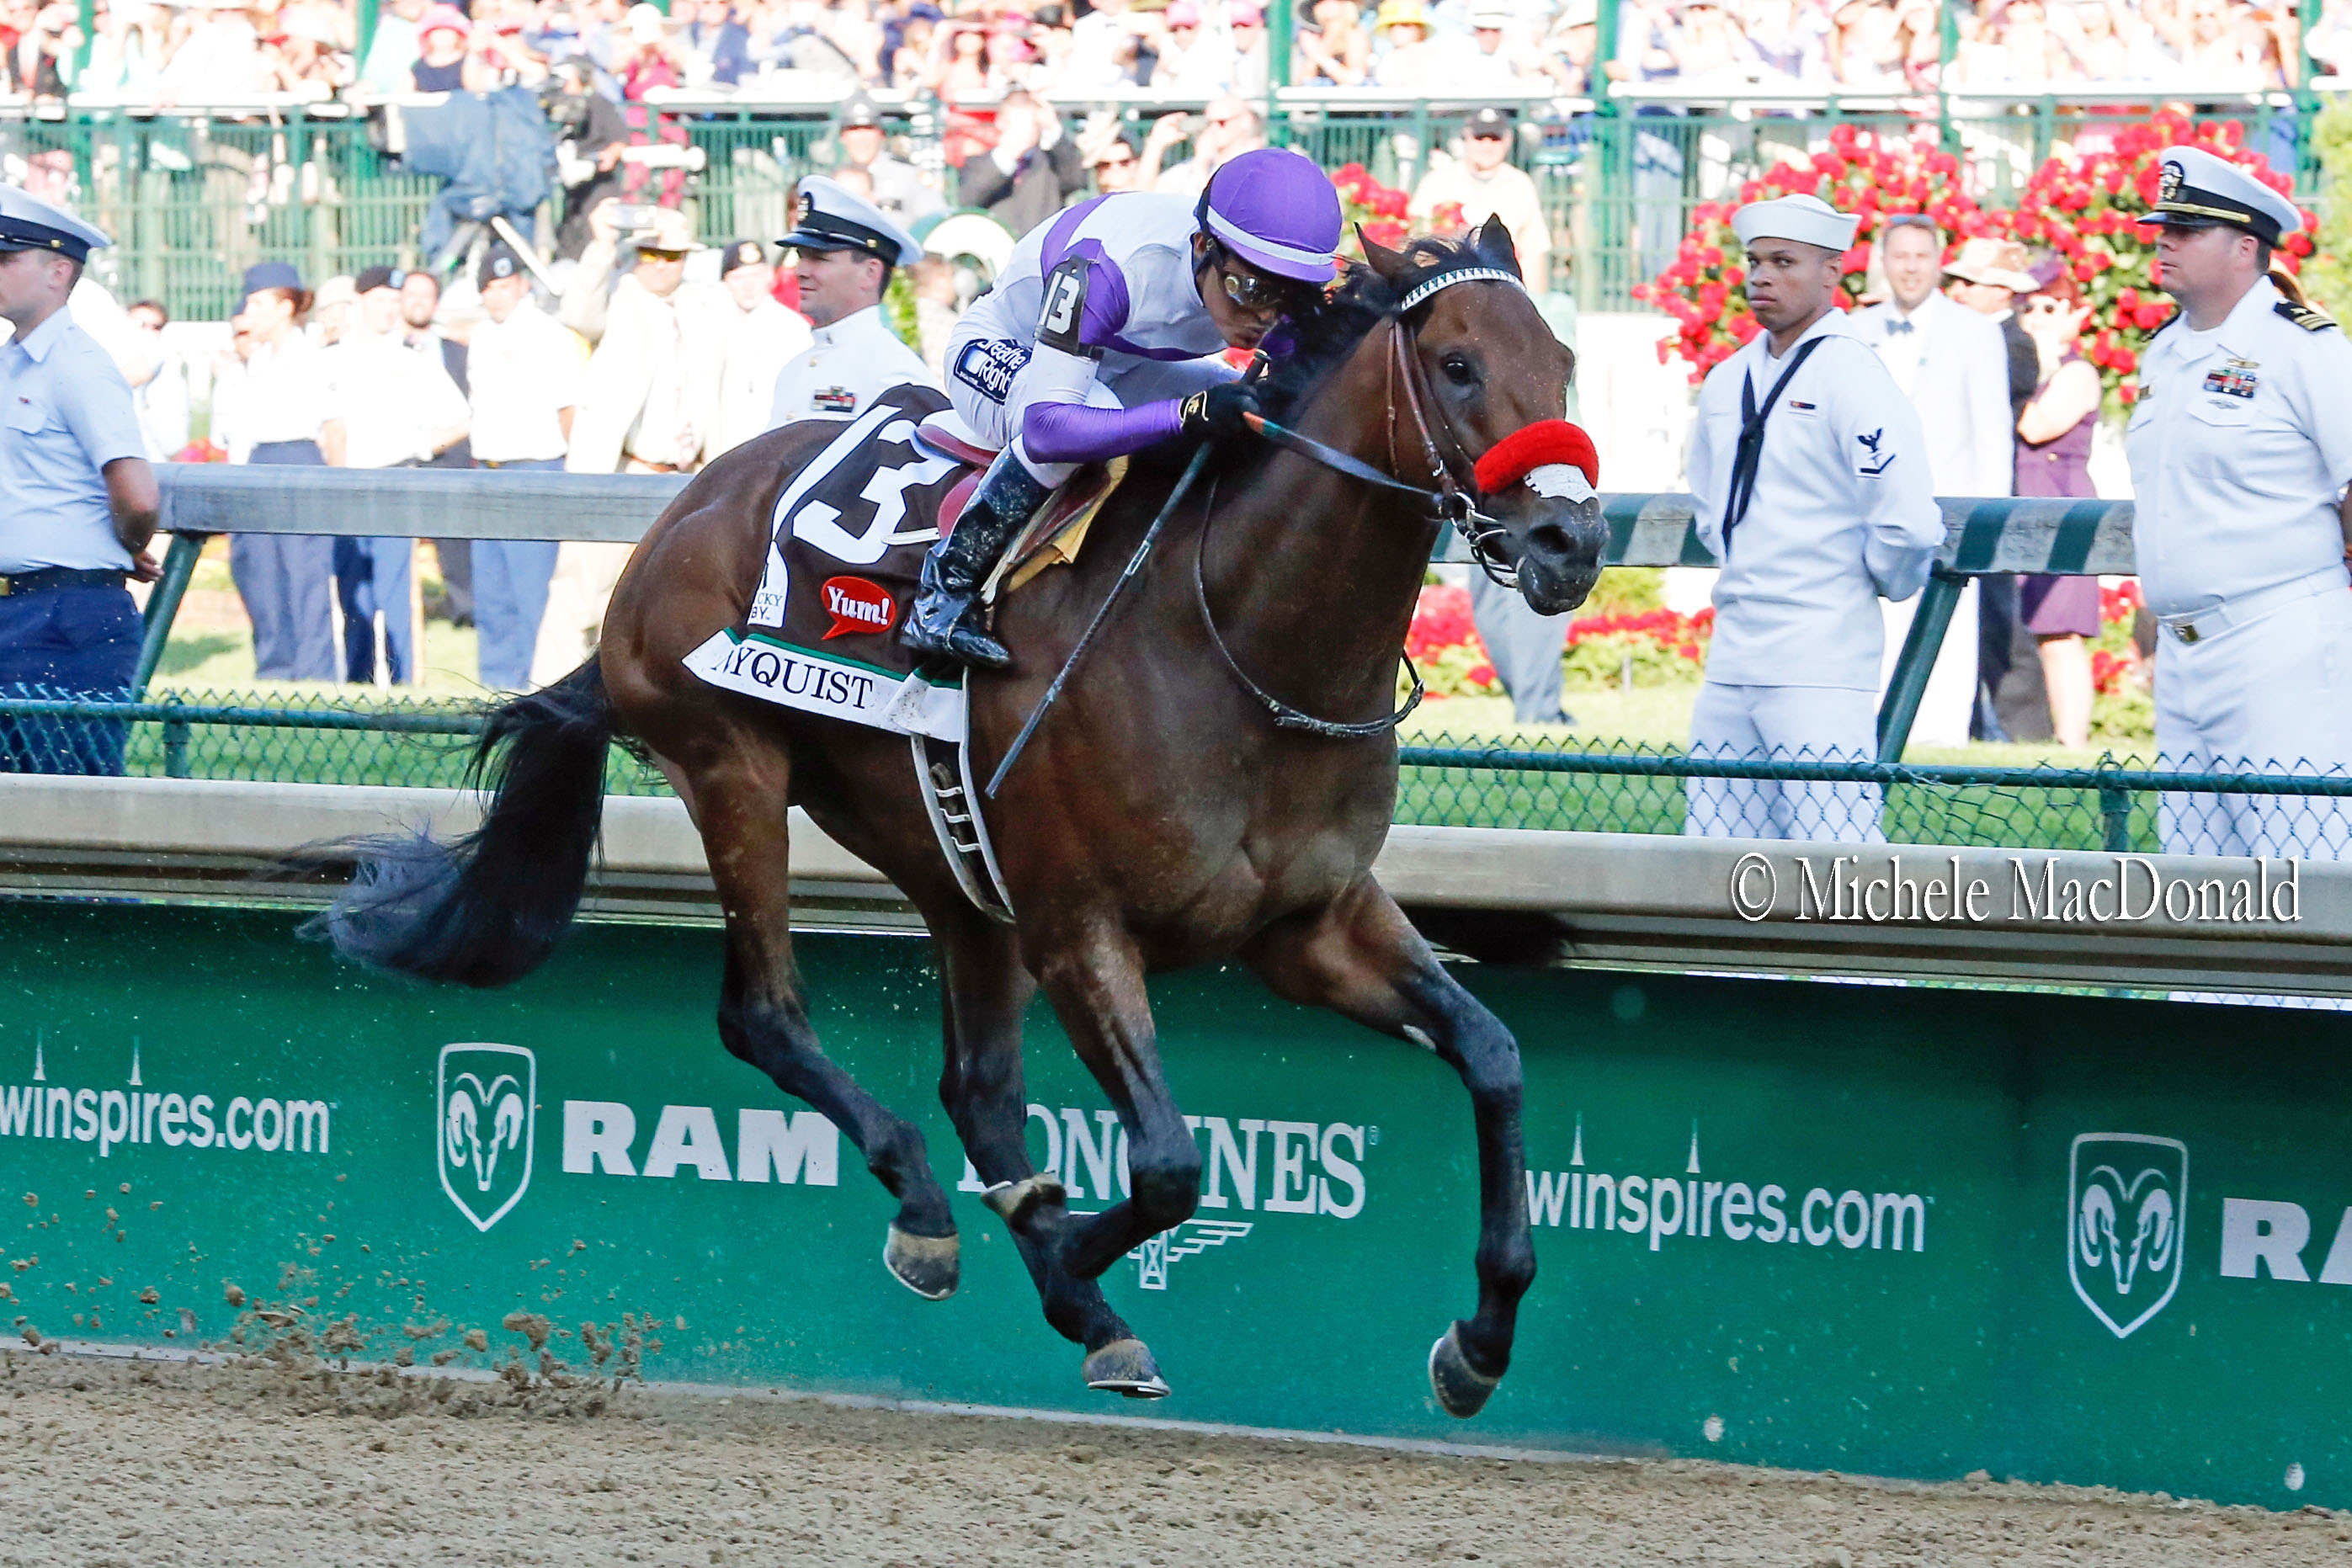 Nyquist powers home to Kentucky Derby glory at Churchill Downs last year. Photo: Michele MacDonald